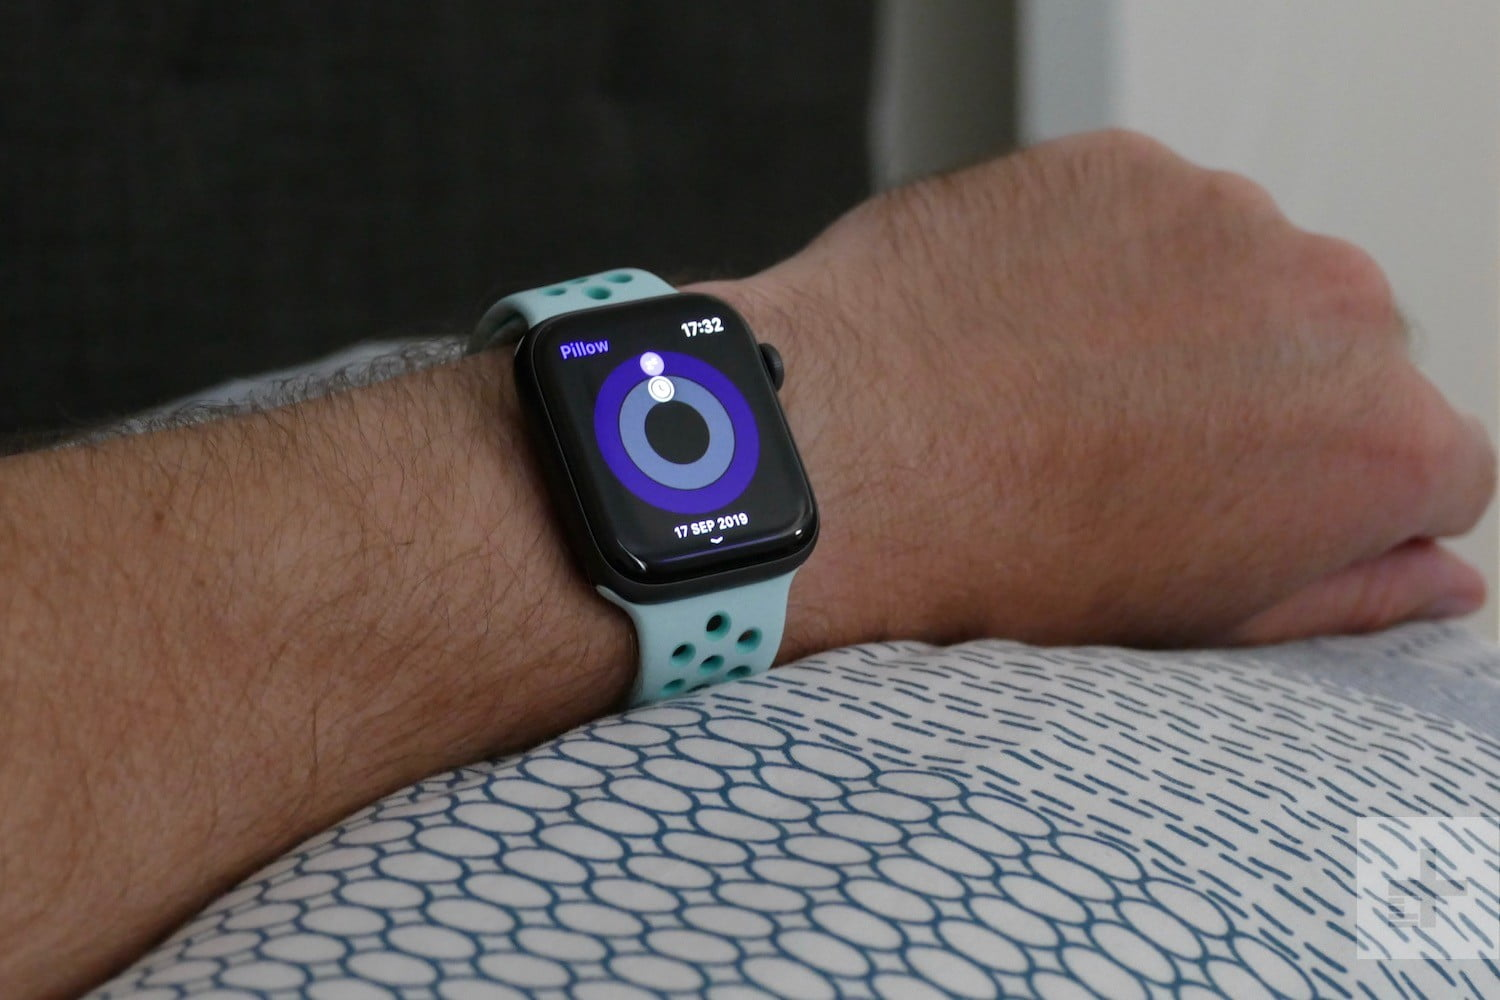 How to track your sleep with an Apple Watch